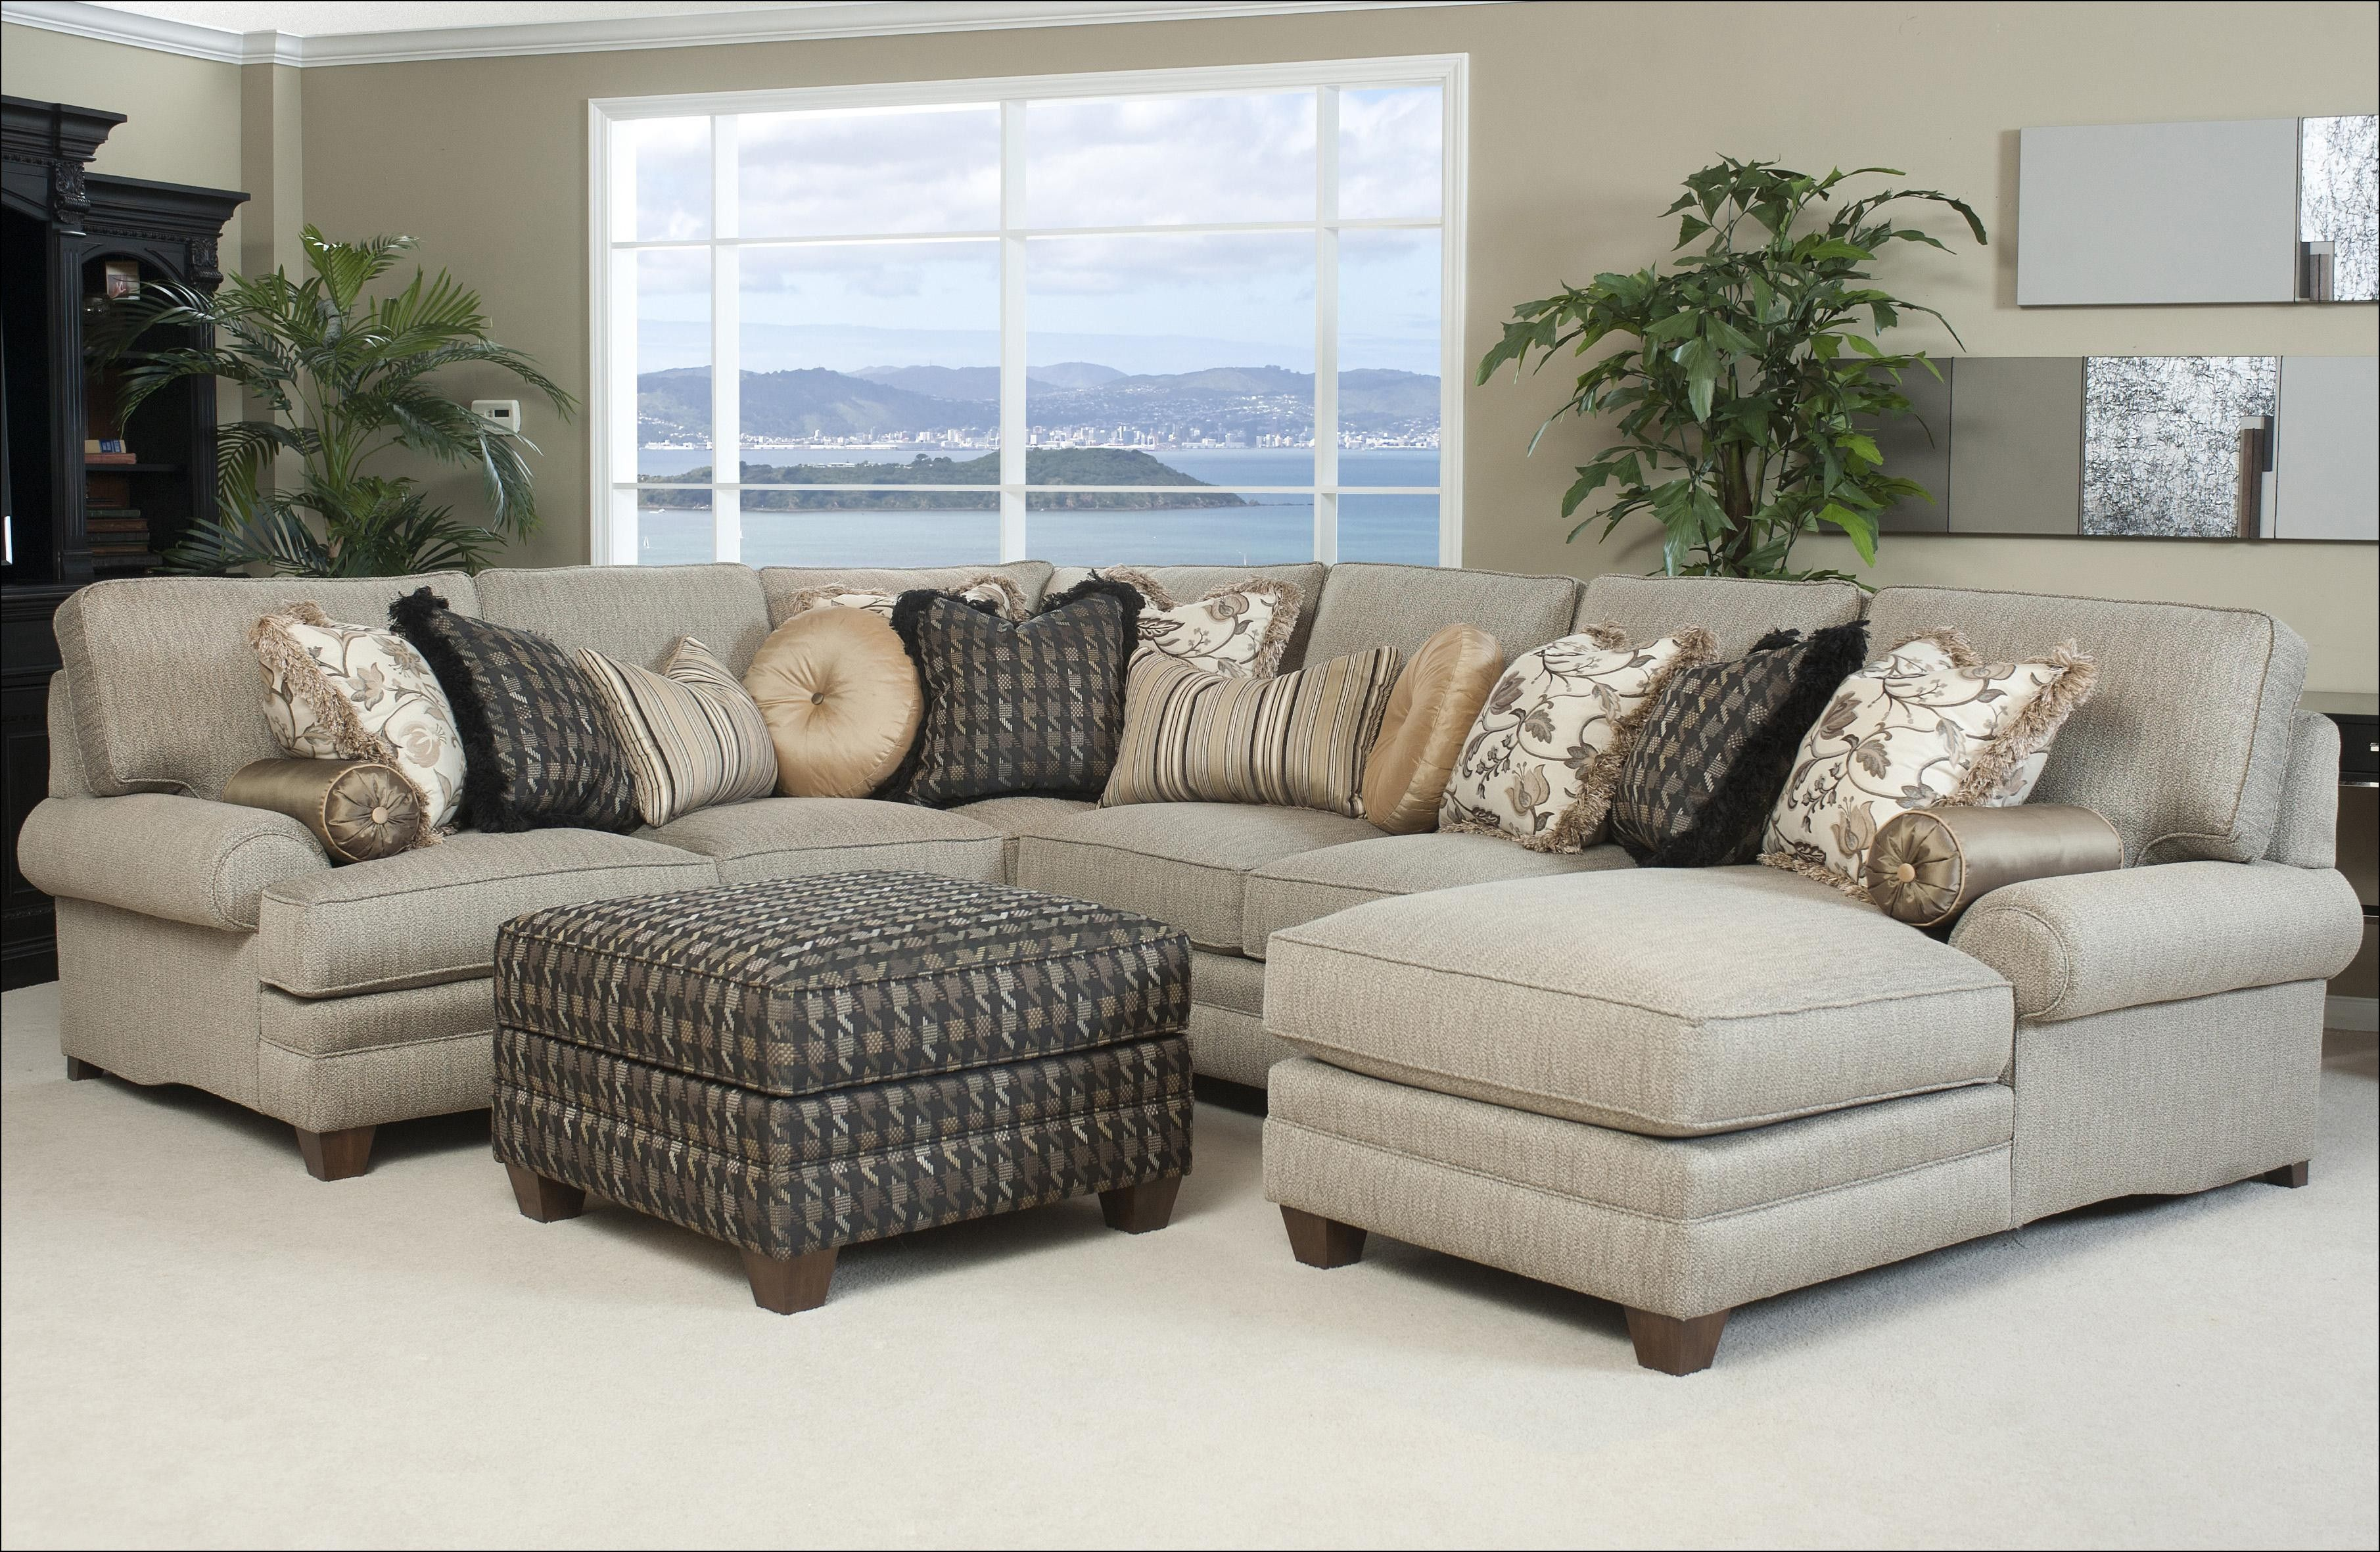 L shaped window seat ideas  comfy sectional sofas  couch u sofa gallery  pinterest  comfy